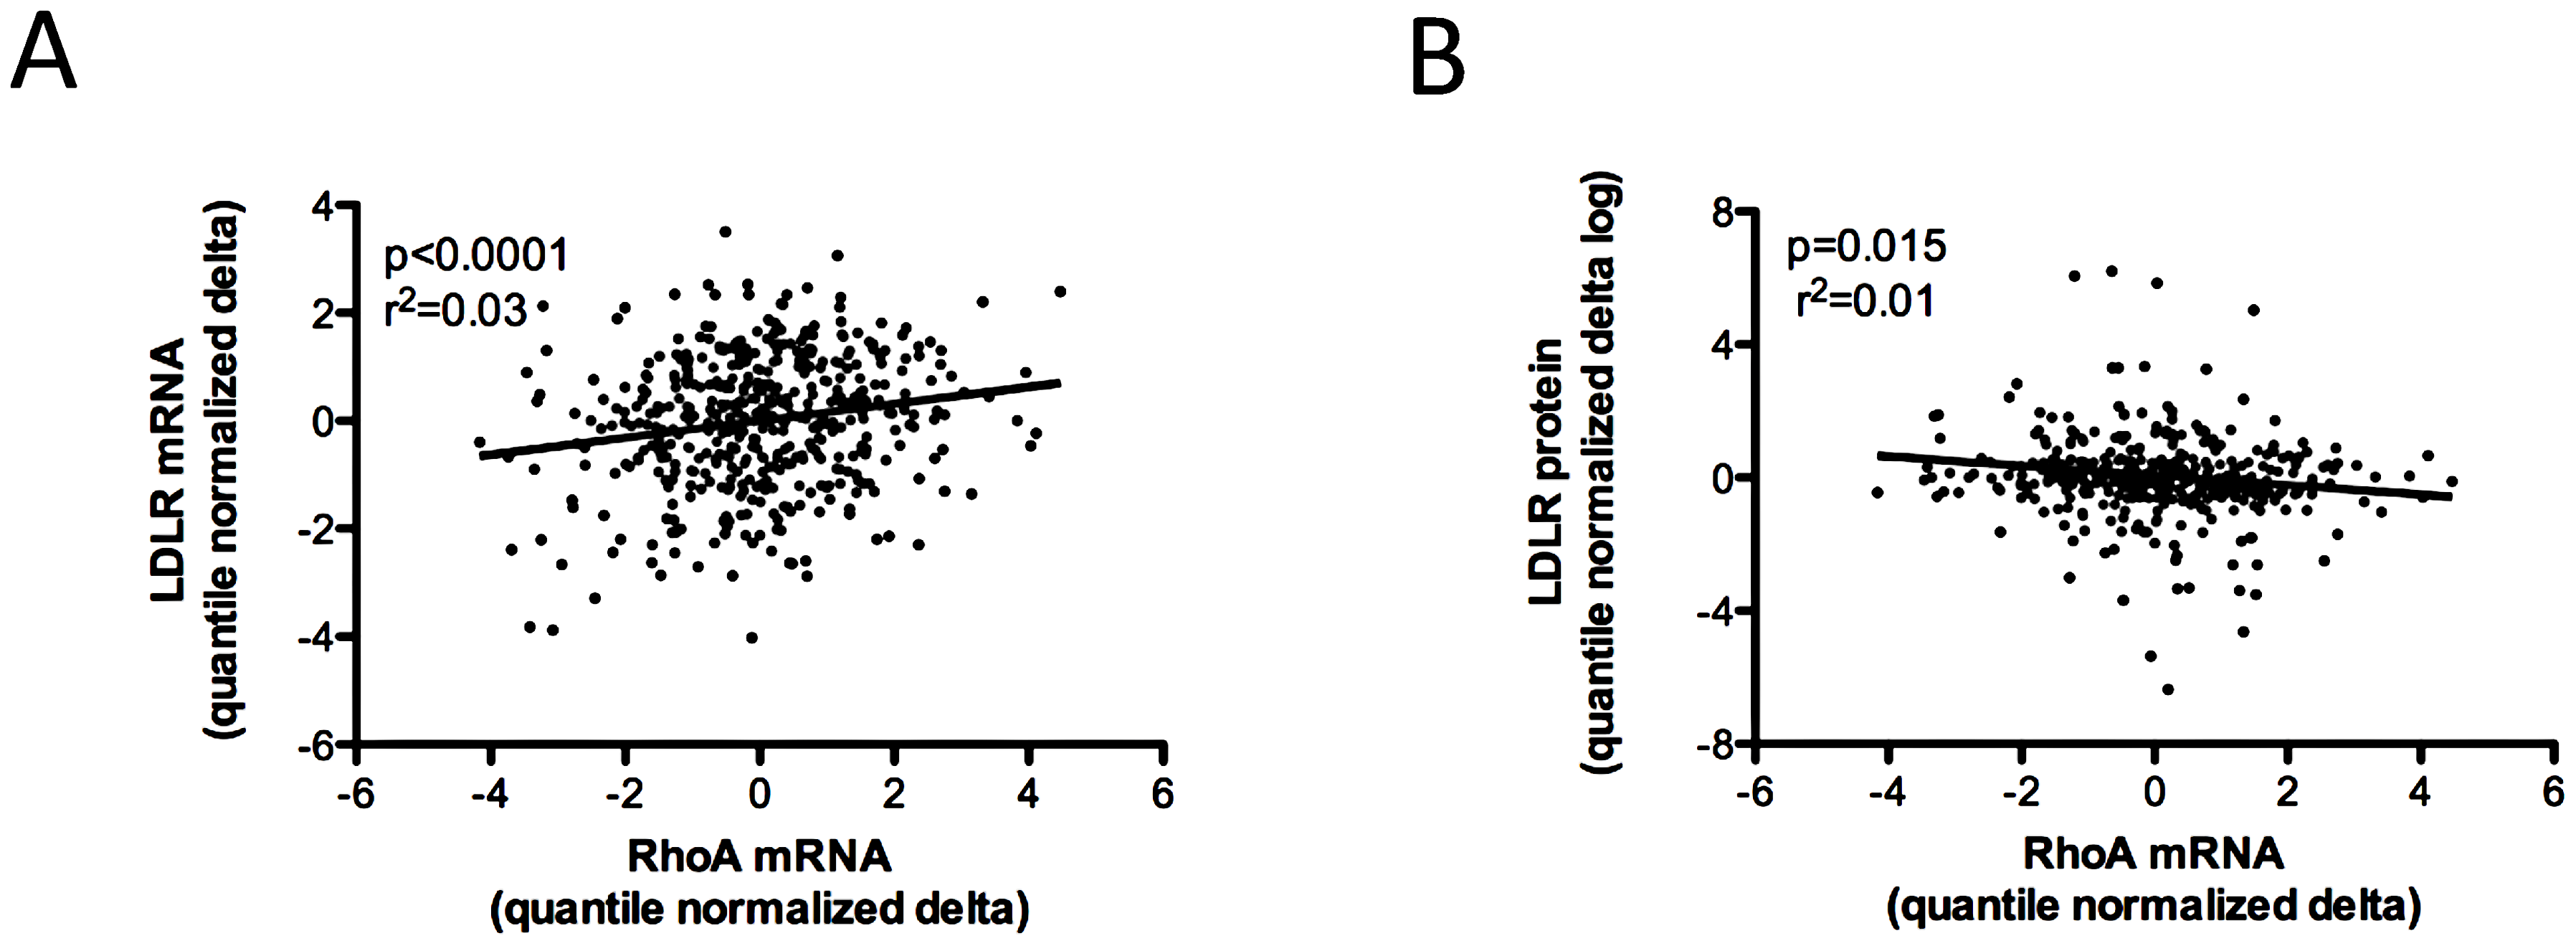 Association of variation in <i>RHOA</i> mRNA expression levels with other cellular phenotypes.